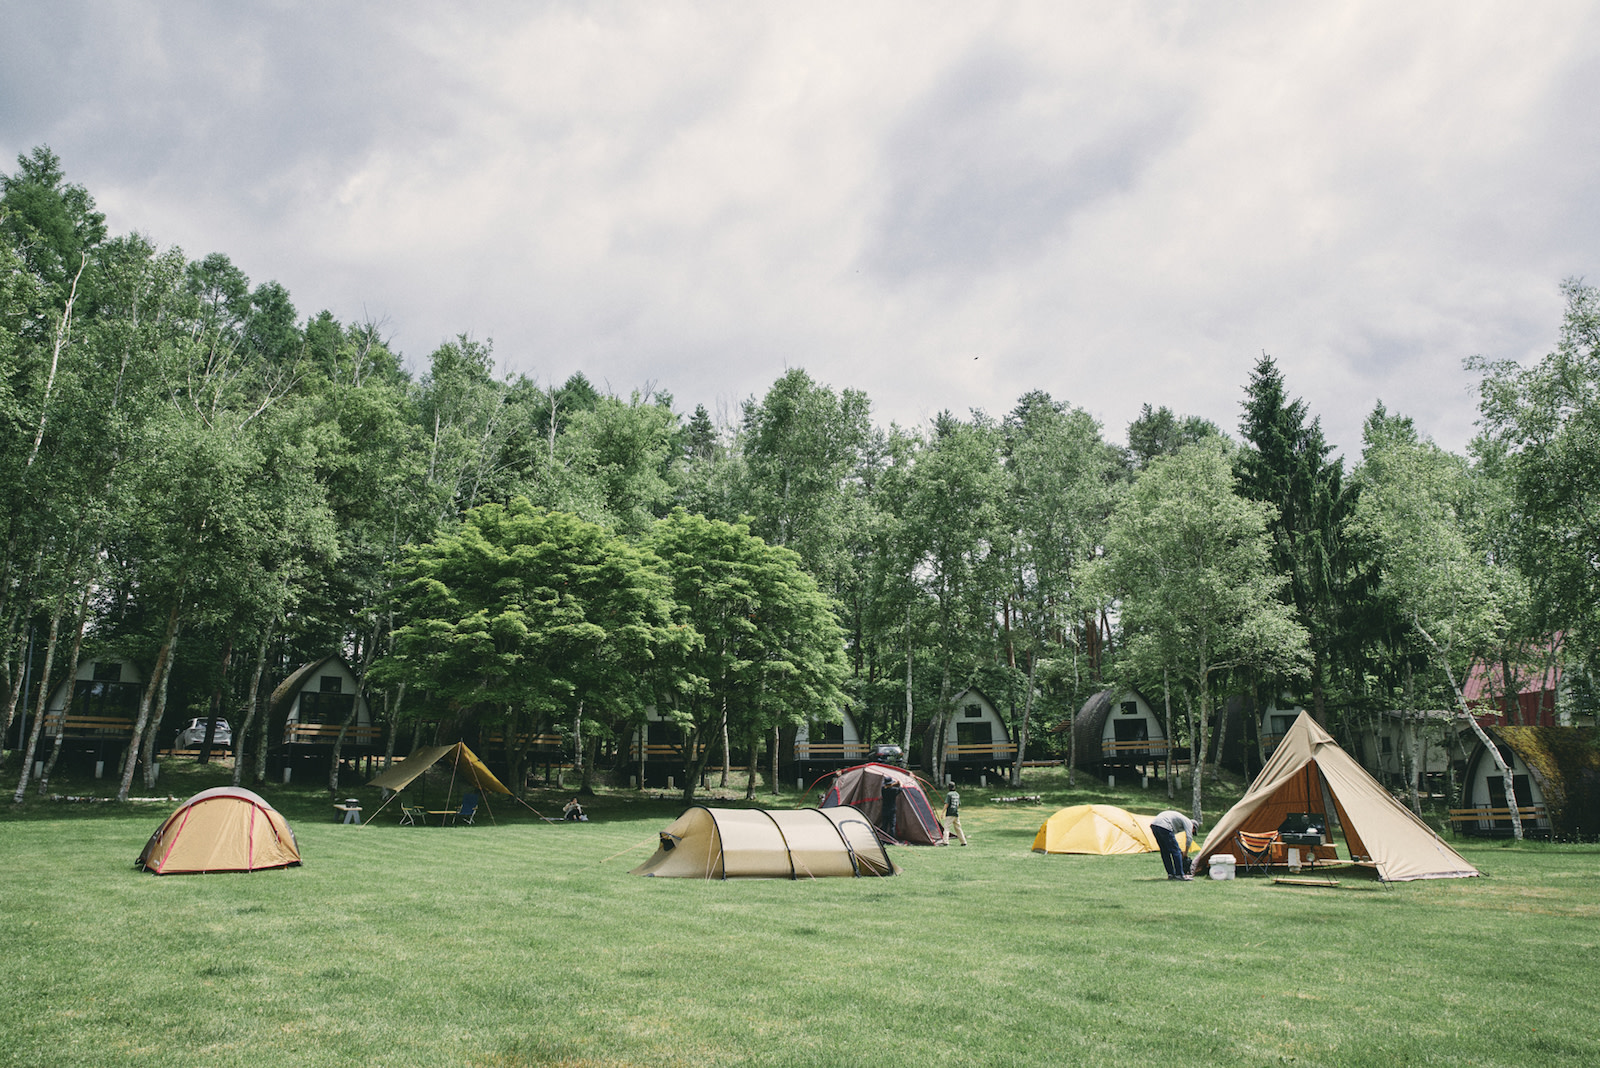 camp | Workations(ワーケーションズ)